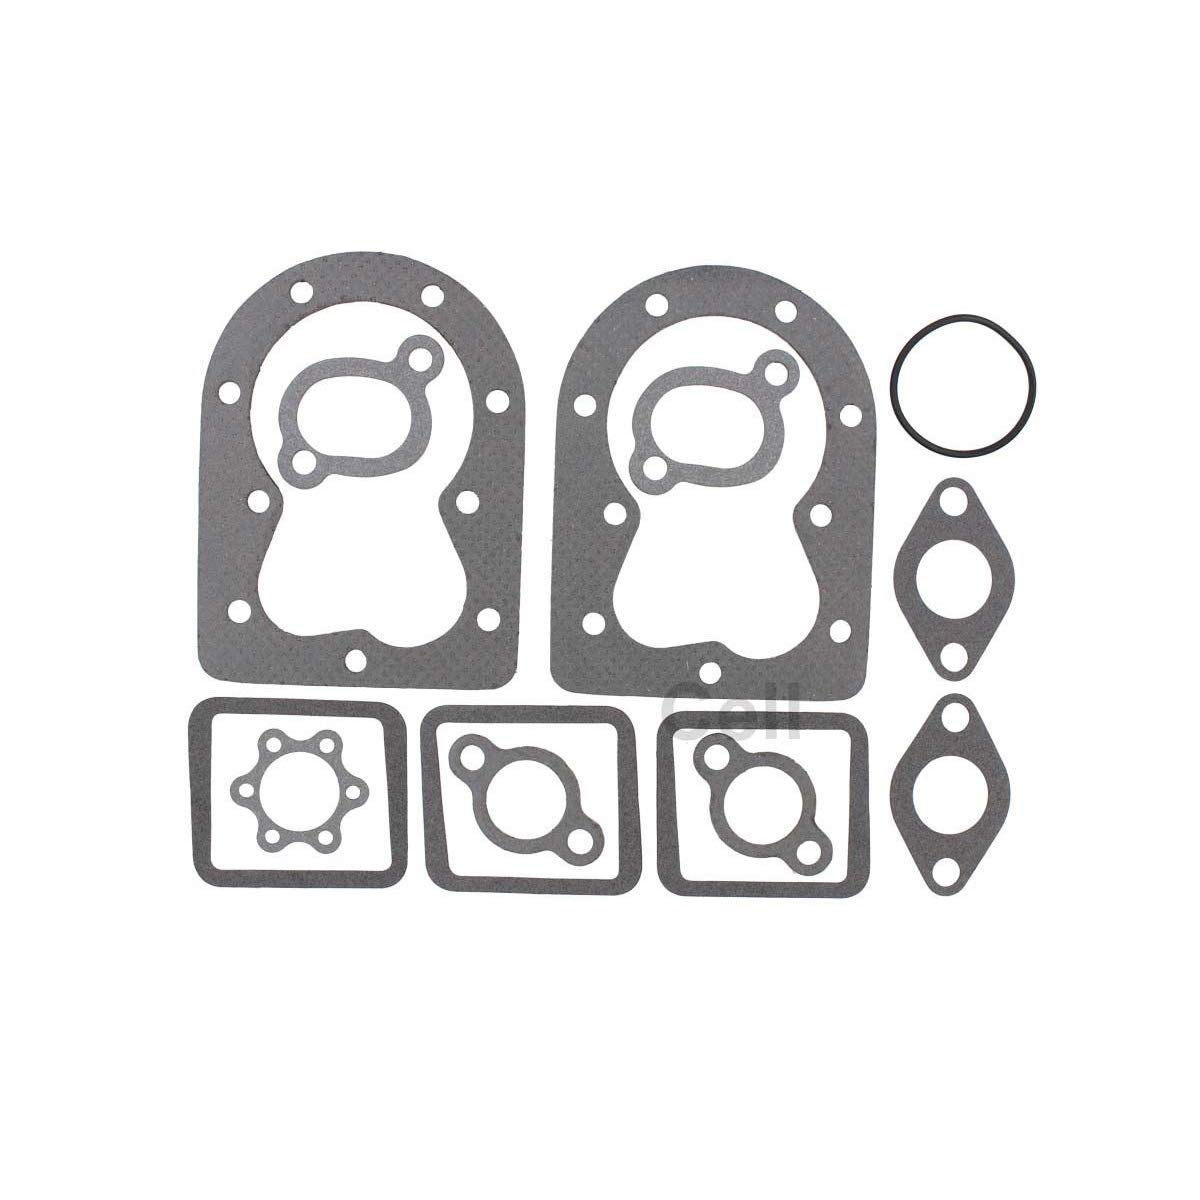 Valve Grind Head Gasket Set for Onan BF-B43-48 P216 P218 P220 Engine 110-3181 HAOCHENG